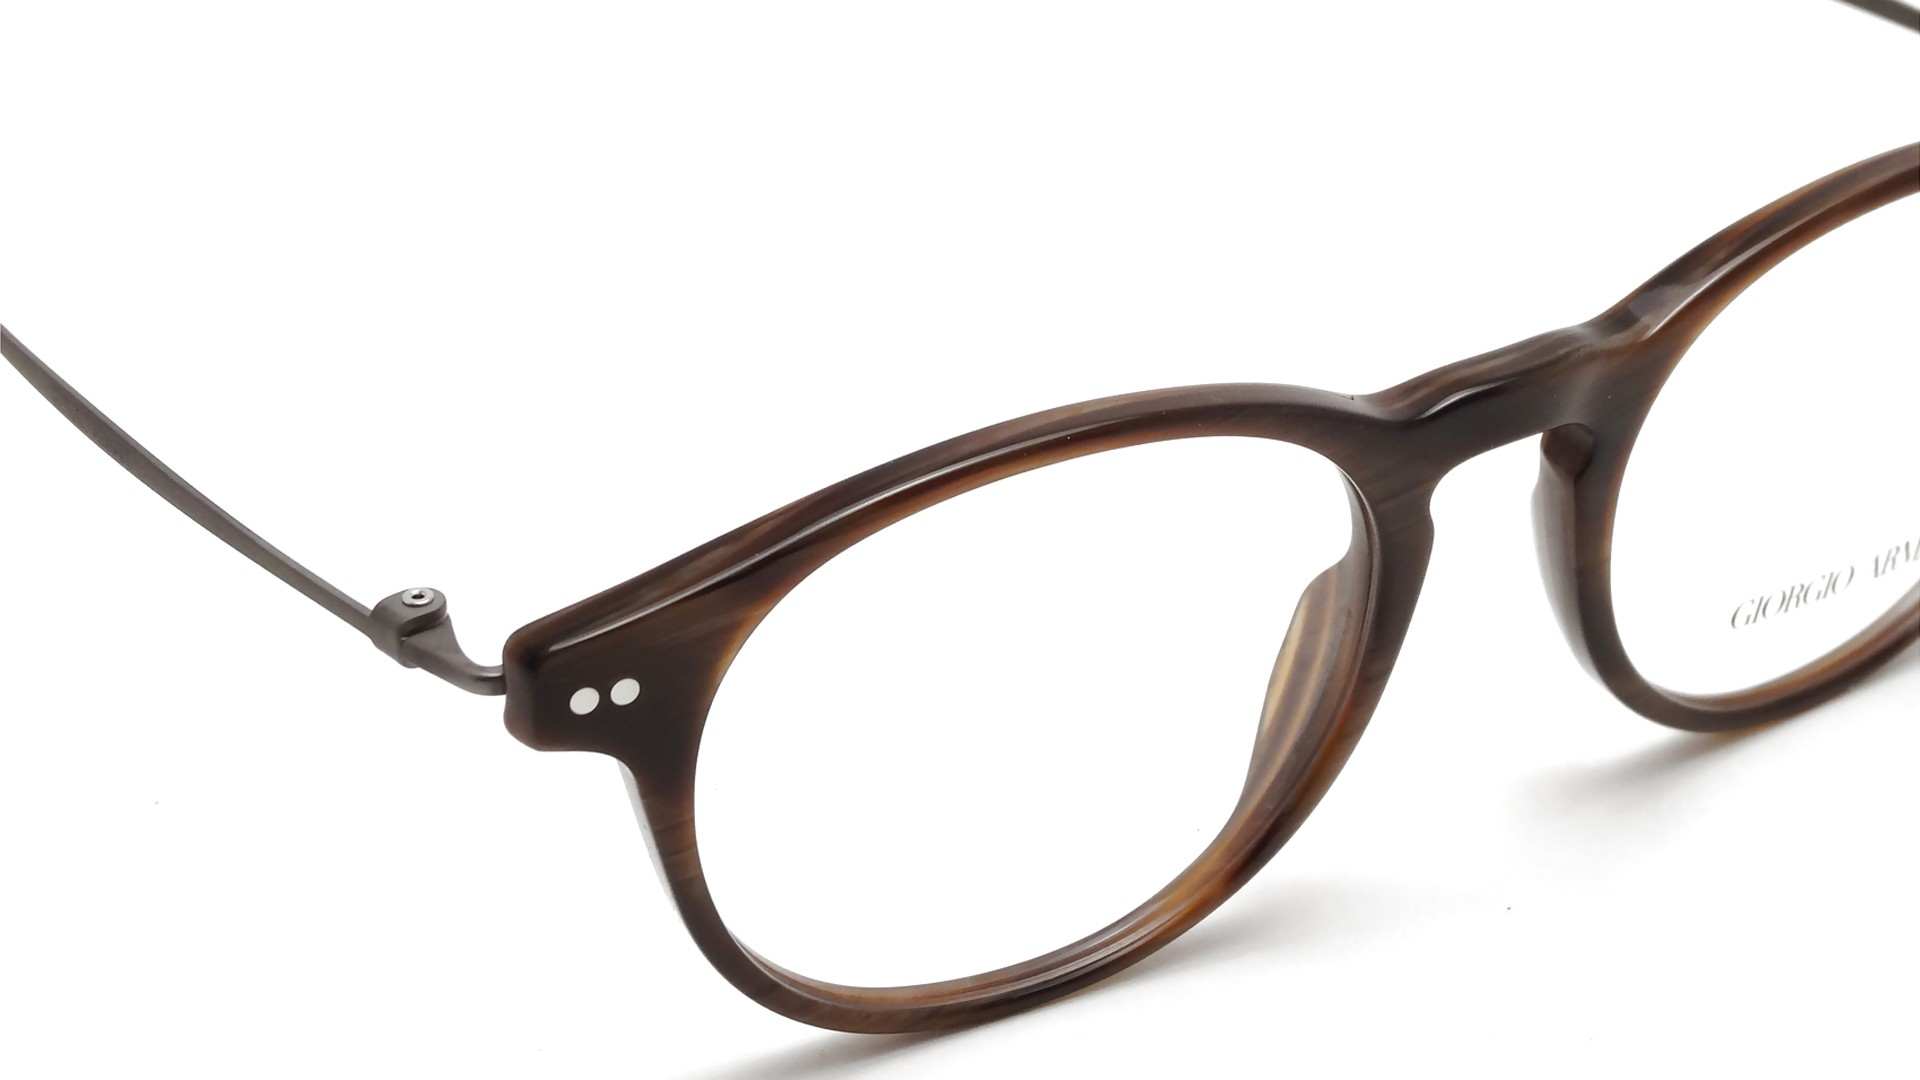 Armani Eyeglass Frames 2015 : image for ar7103 from eyewear glasses frames sunglasses ...